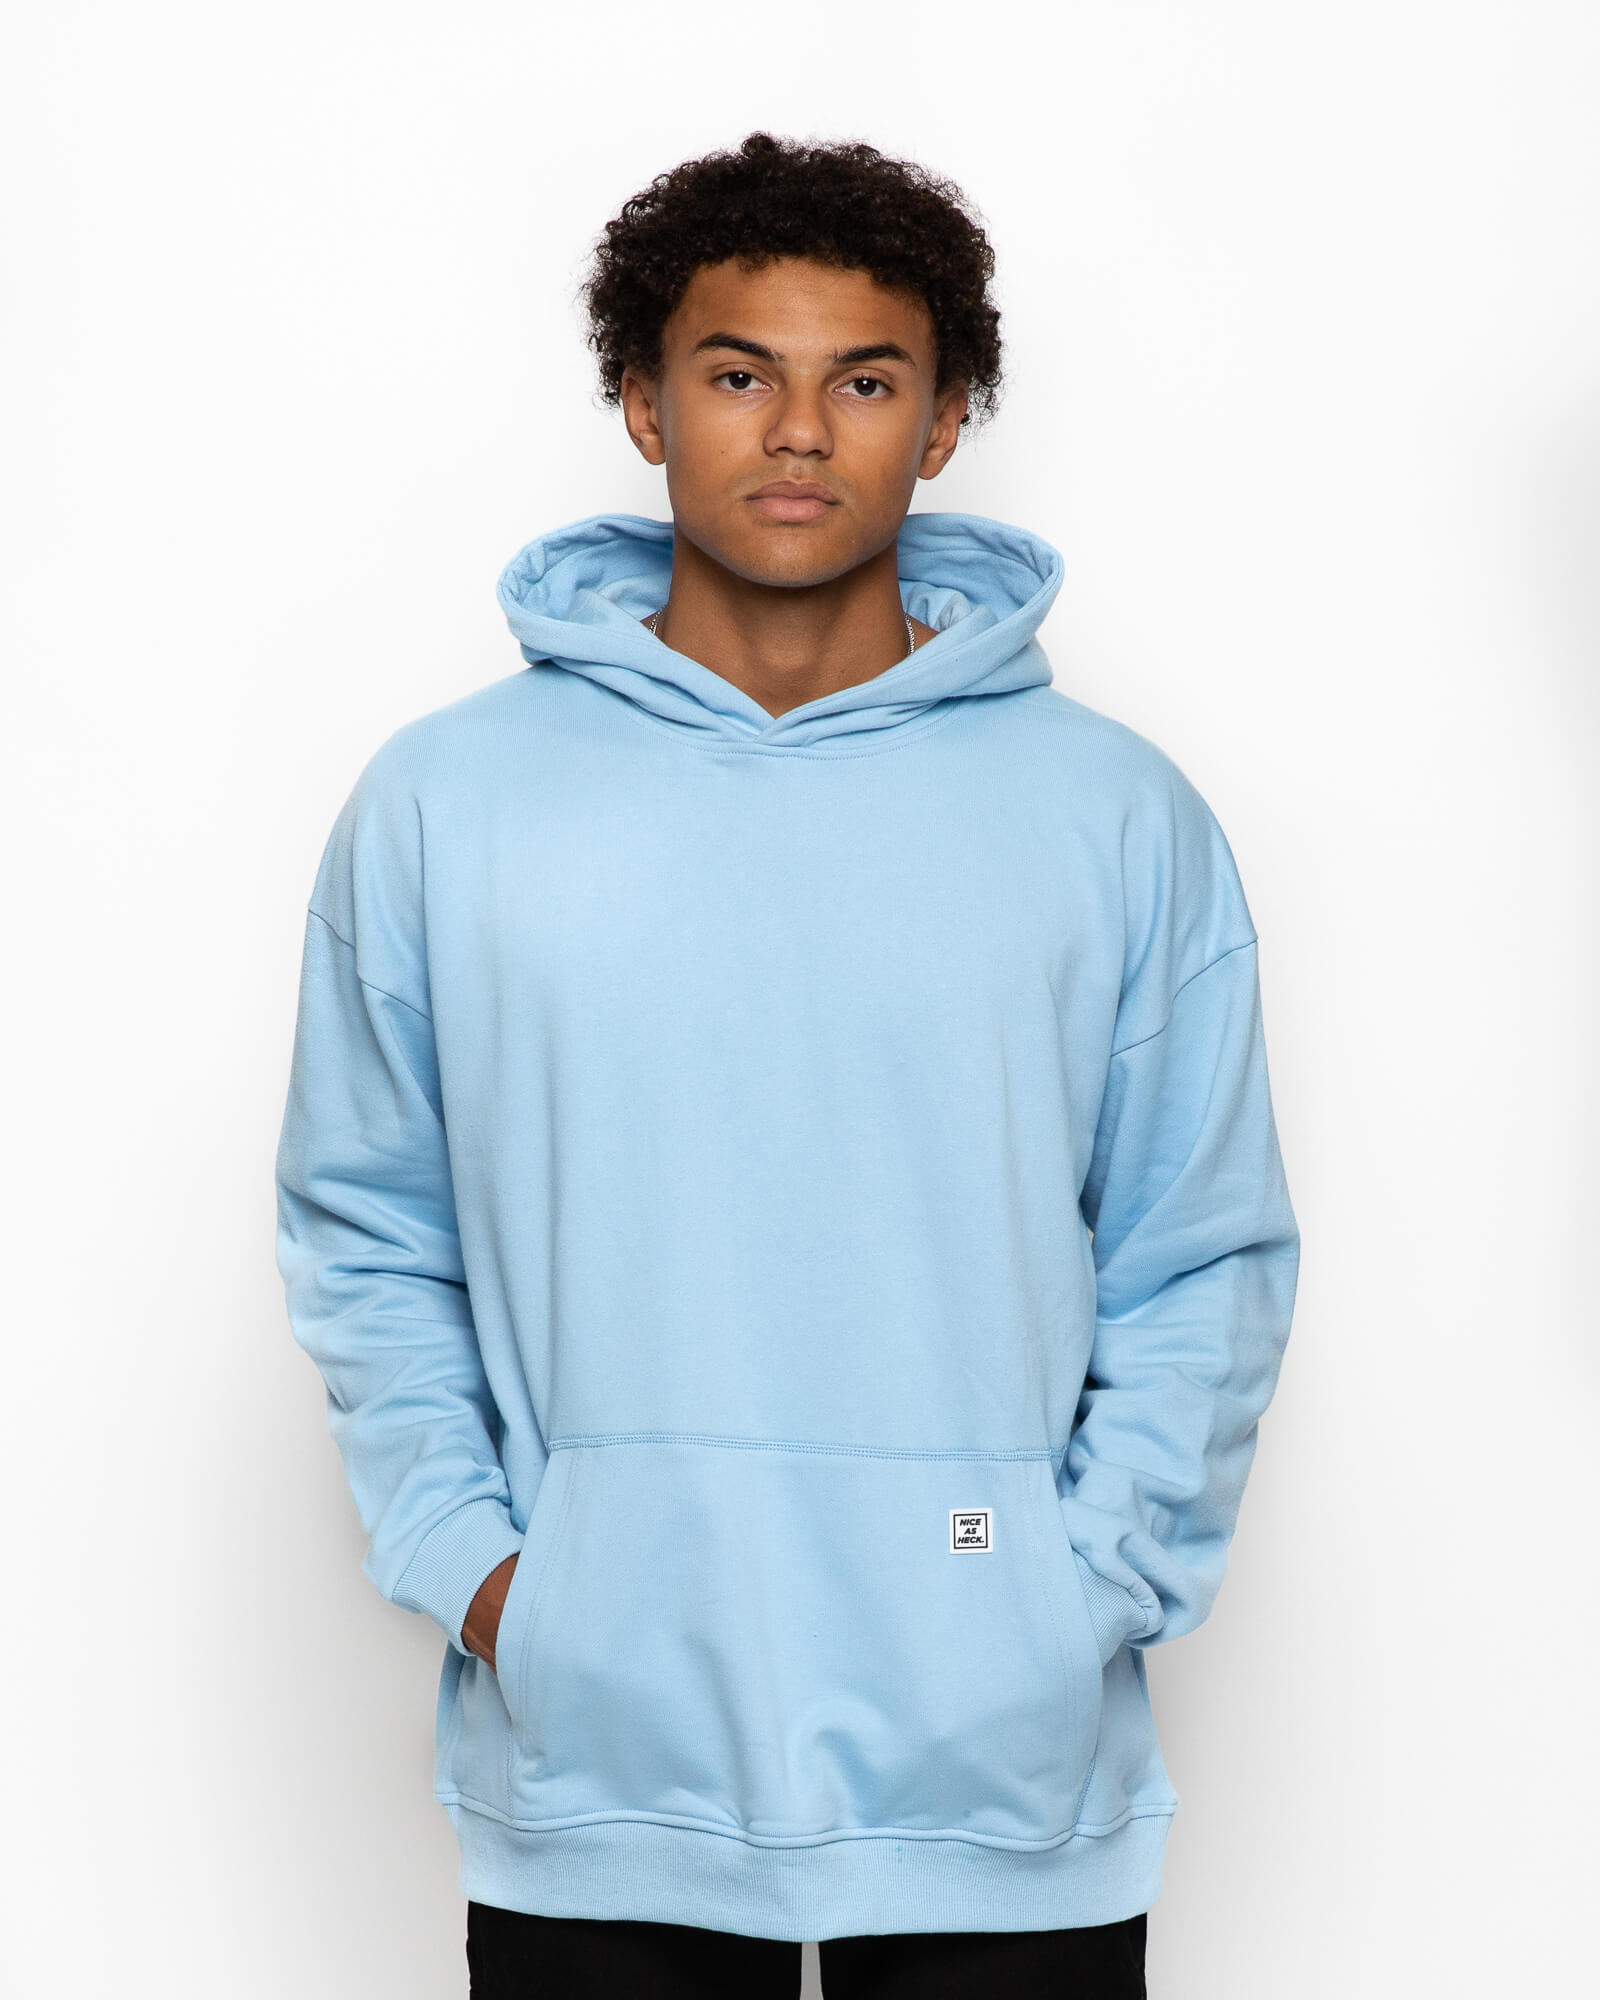 front view of a male model wearing the blue goin steady hoodie with black pants